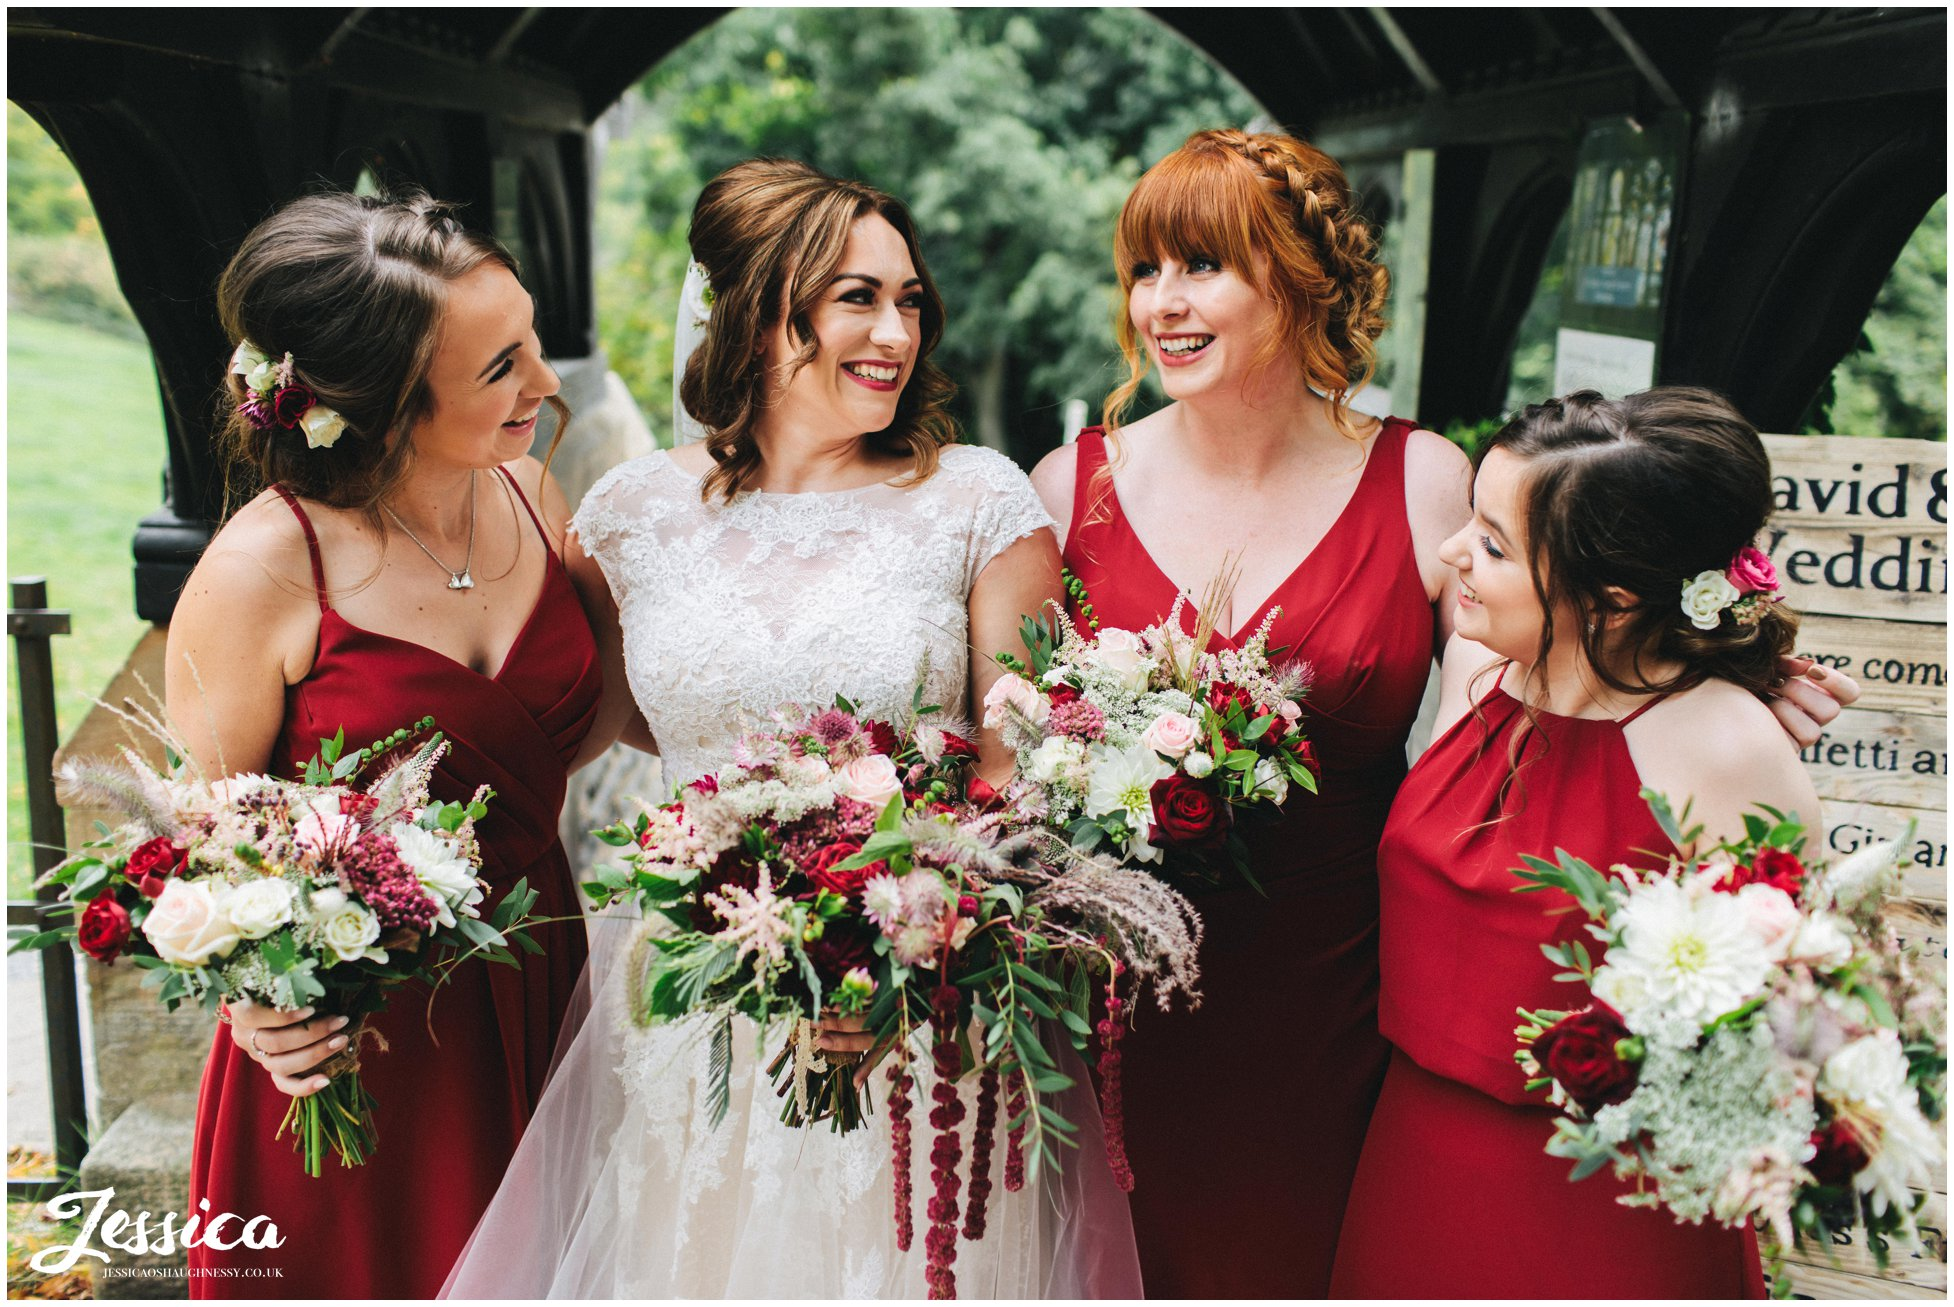 the bride laughs with her bridesmaids before the ceremony starts